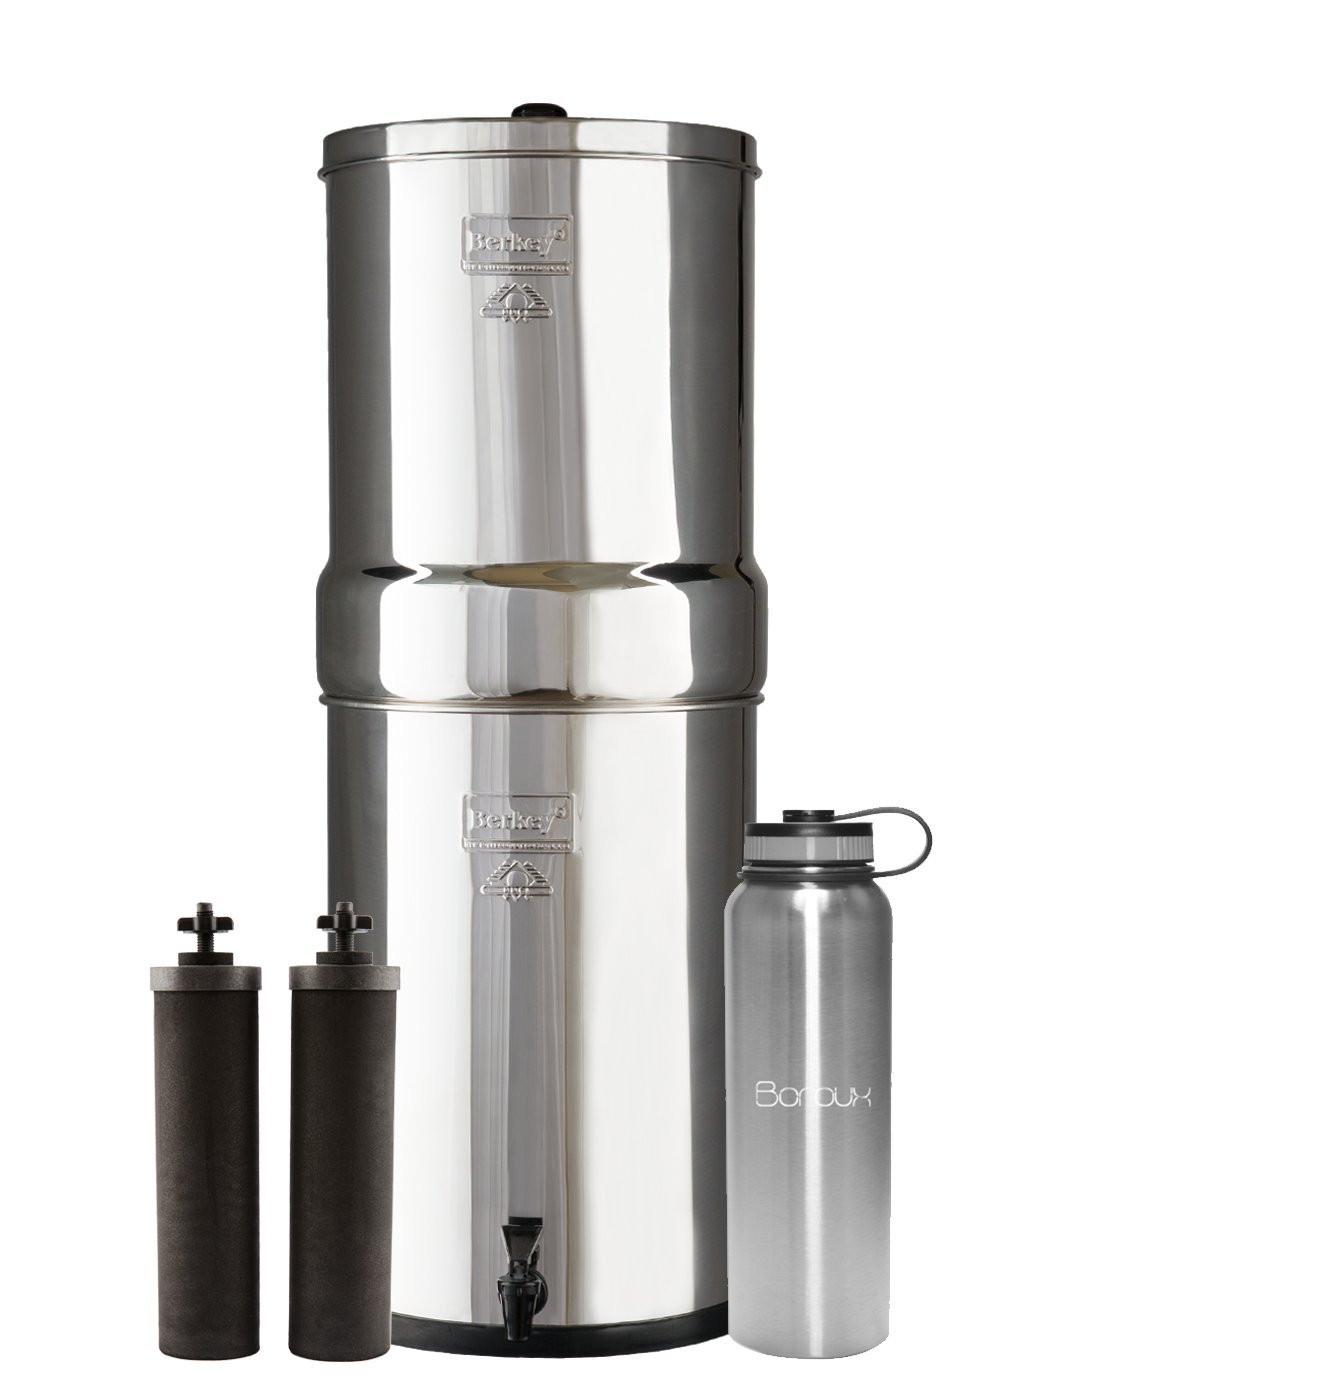 Crown Berkey Water Filter System includes Black filters (6 Gallons) bundled with Boroux 40 oz Stainless Steel Double Wall Bottle